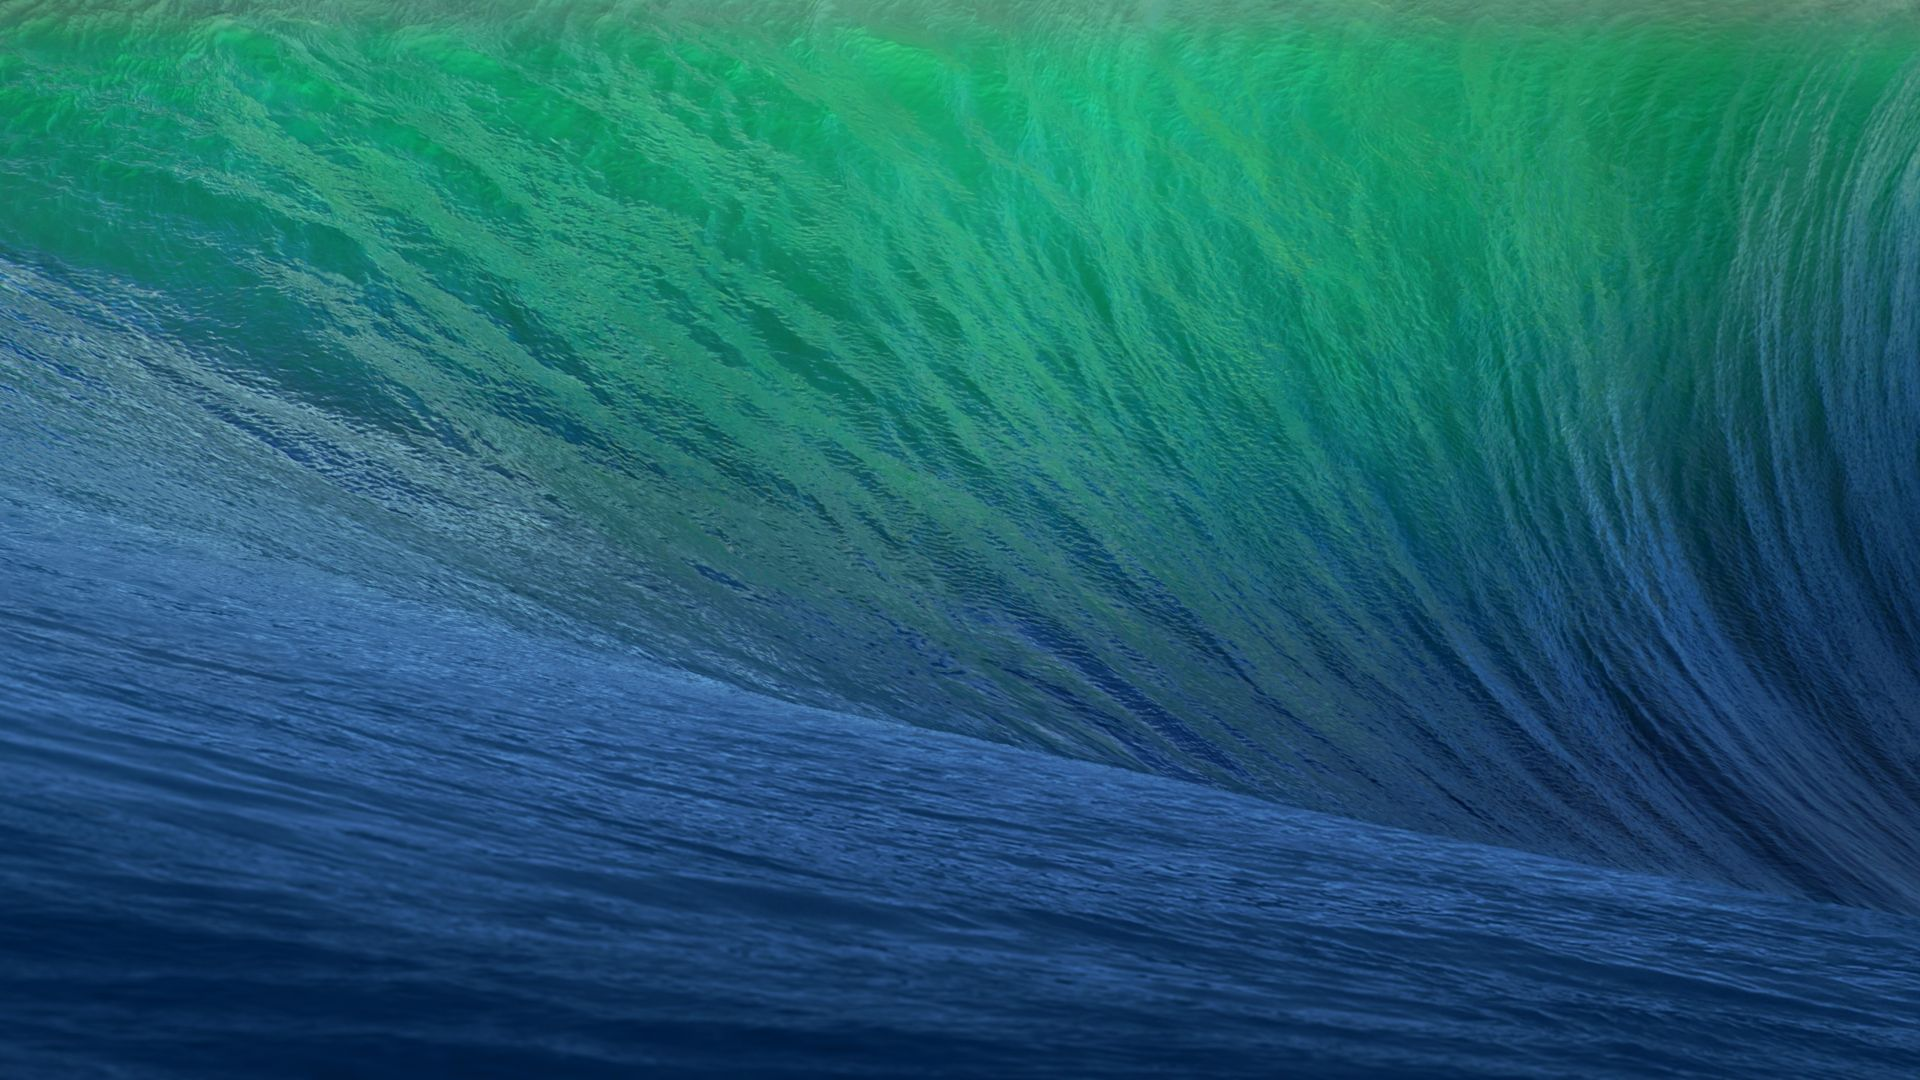 Apple, iOS 10, 4k, 5k, live wallpaper, iphone wallpaper, live photo, wave, macOS Sierra (horizontal)